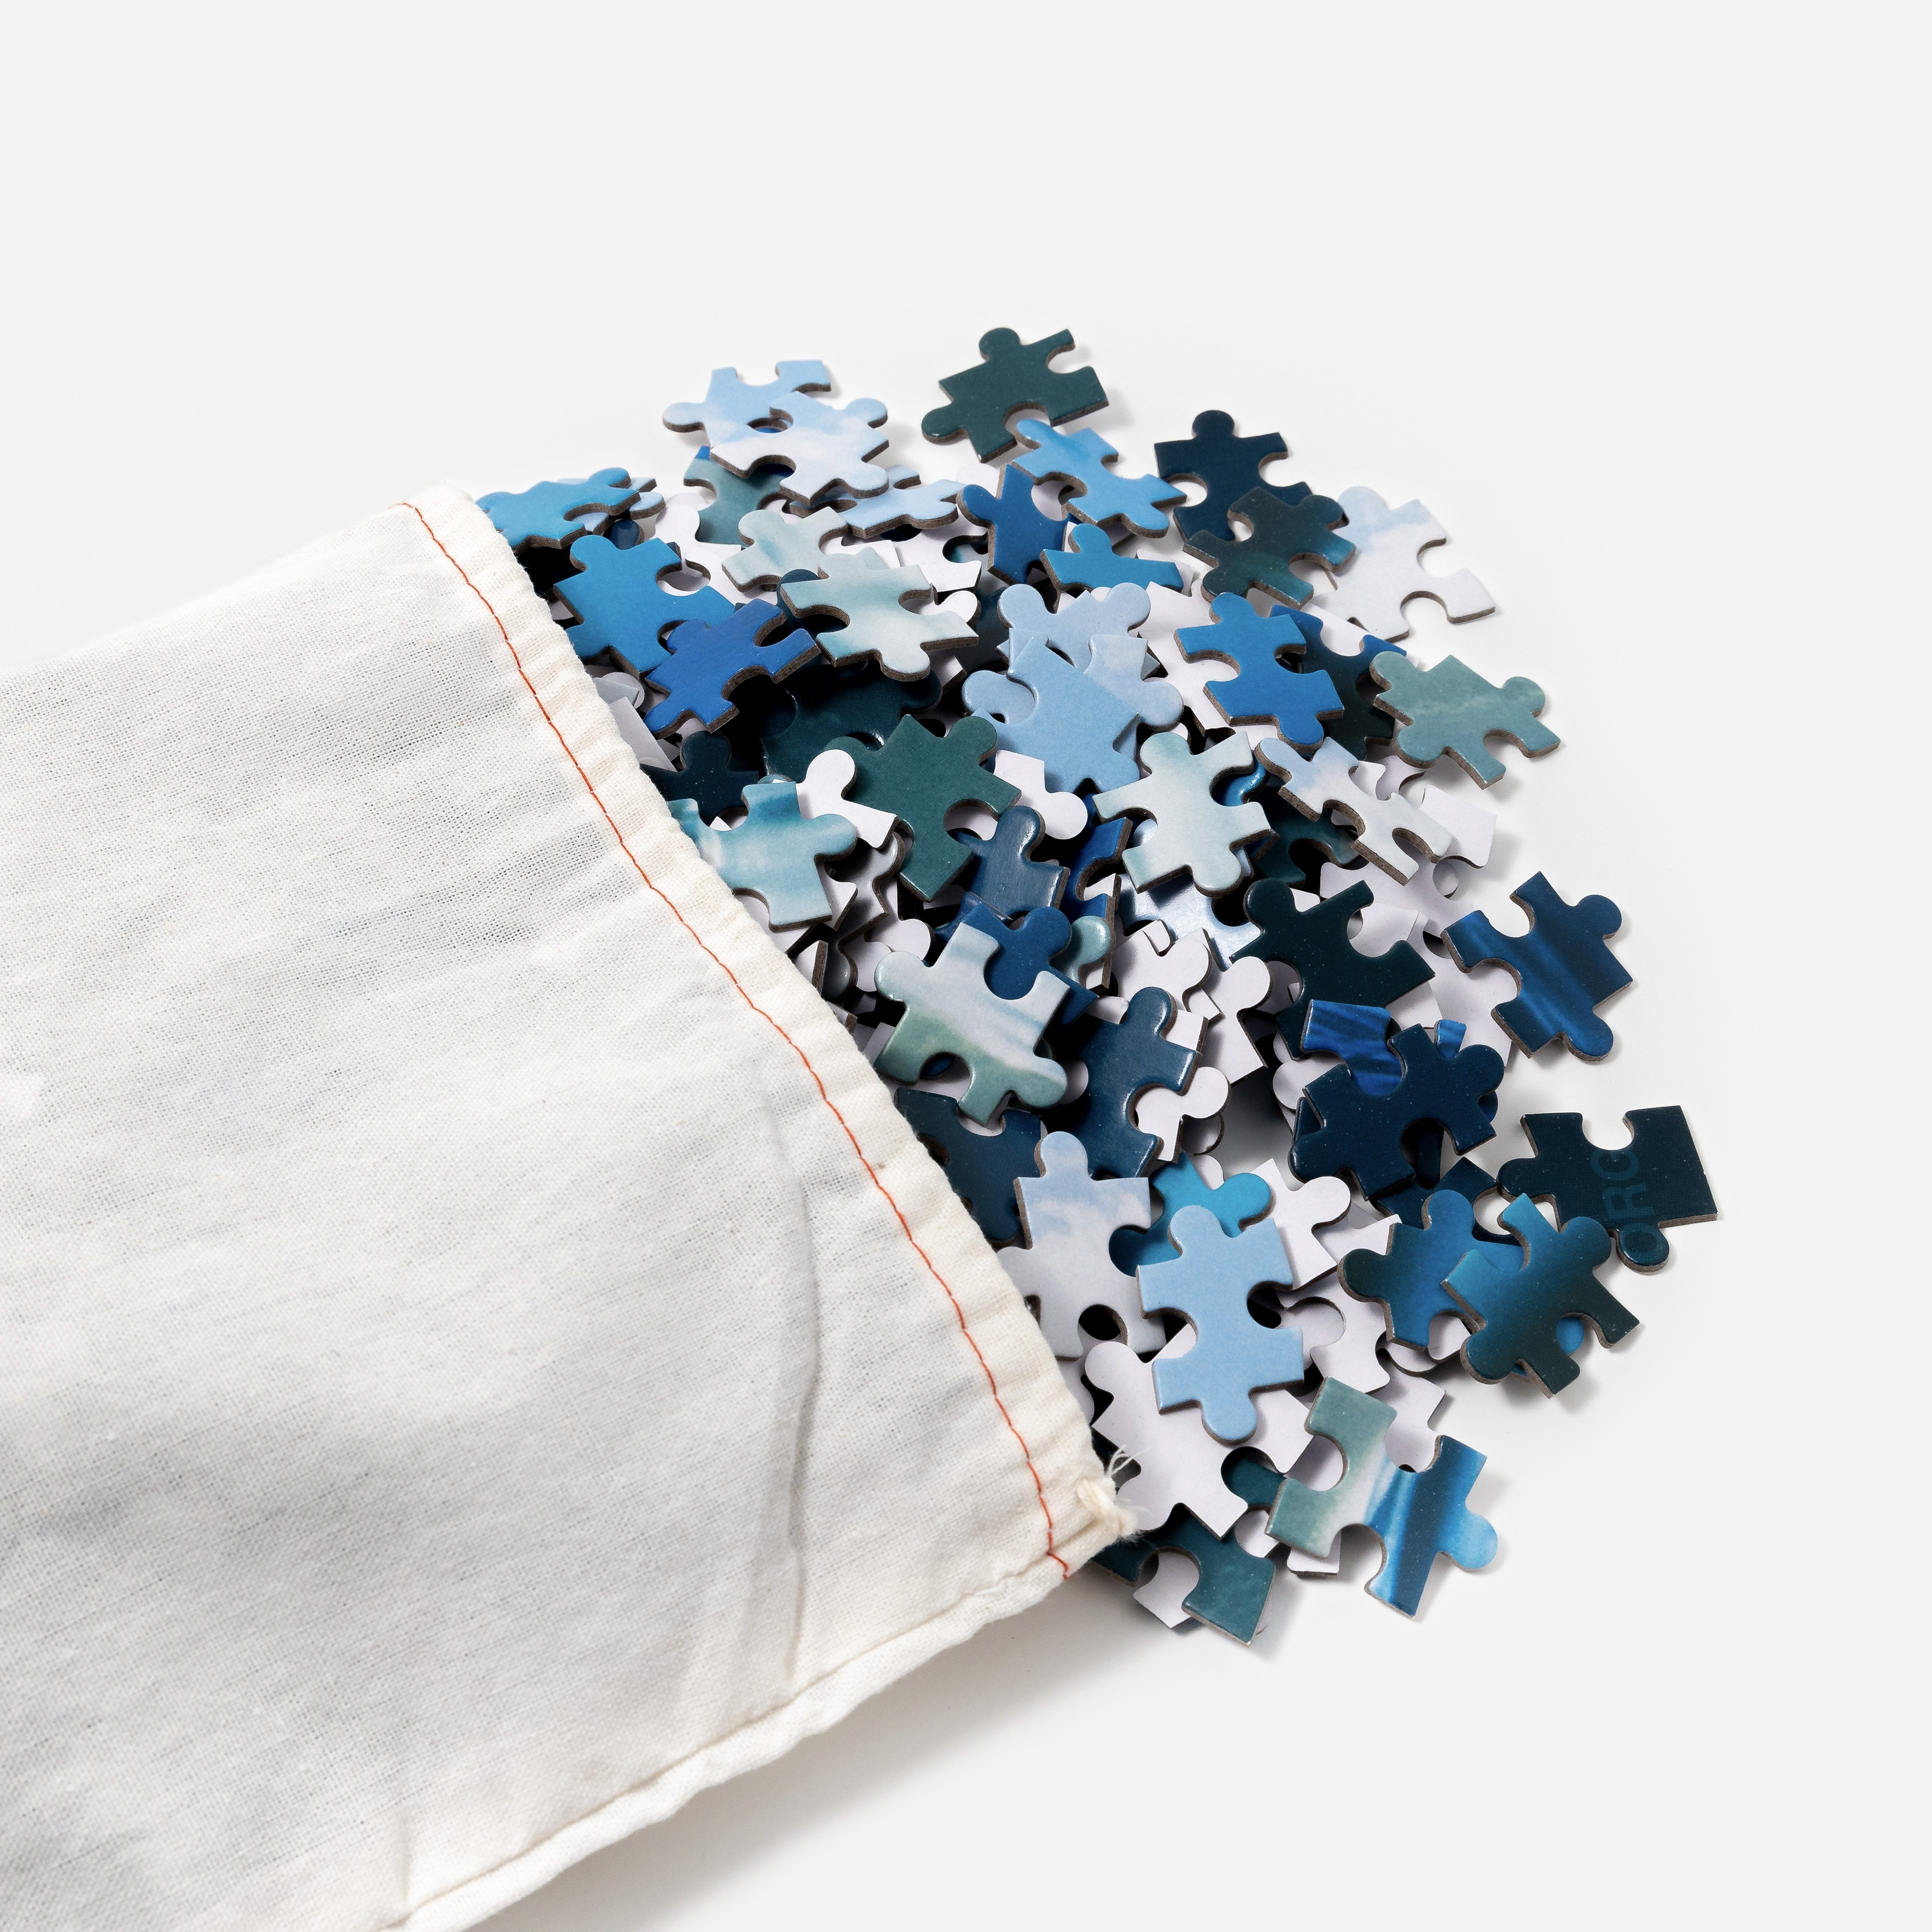 Puzzle for Good Pieces and Bag